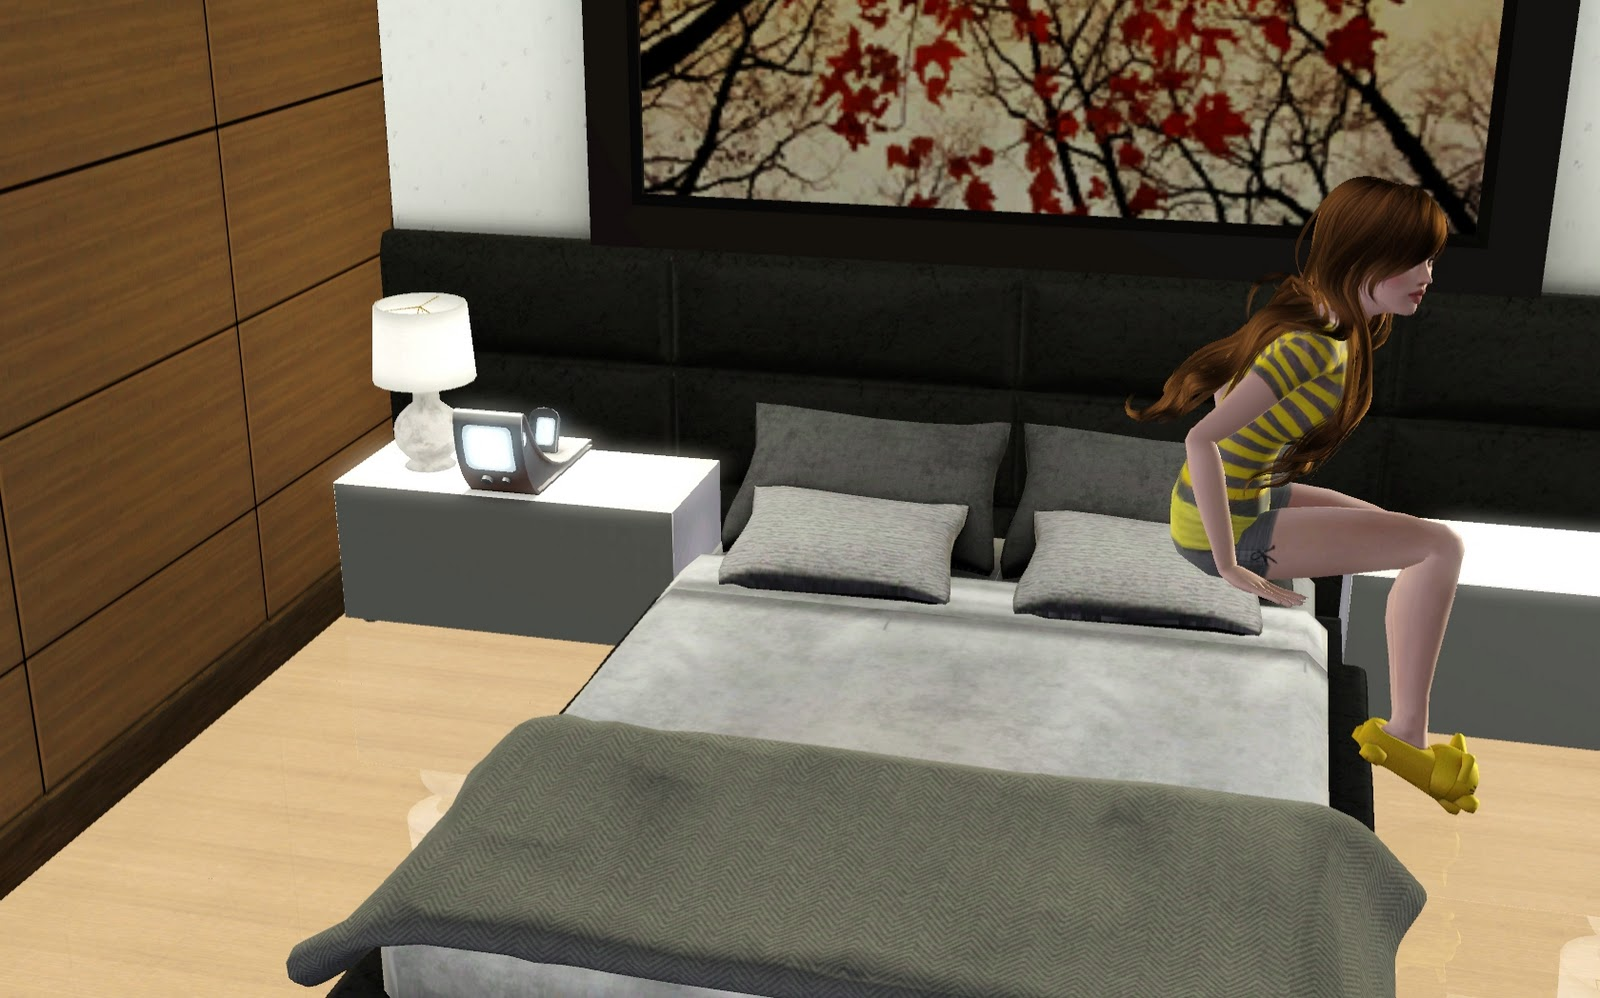 My sim recently started dating an egyptian explorer she met while adventuring in china after her return home she invited him over and they decided to move